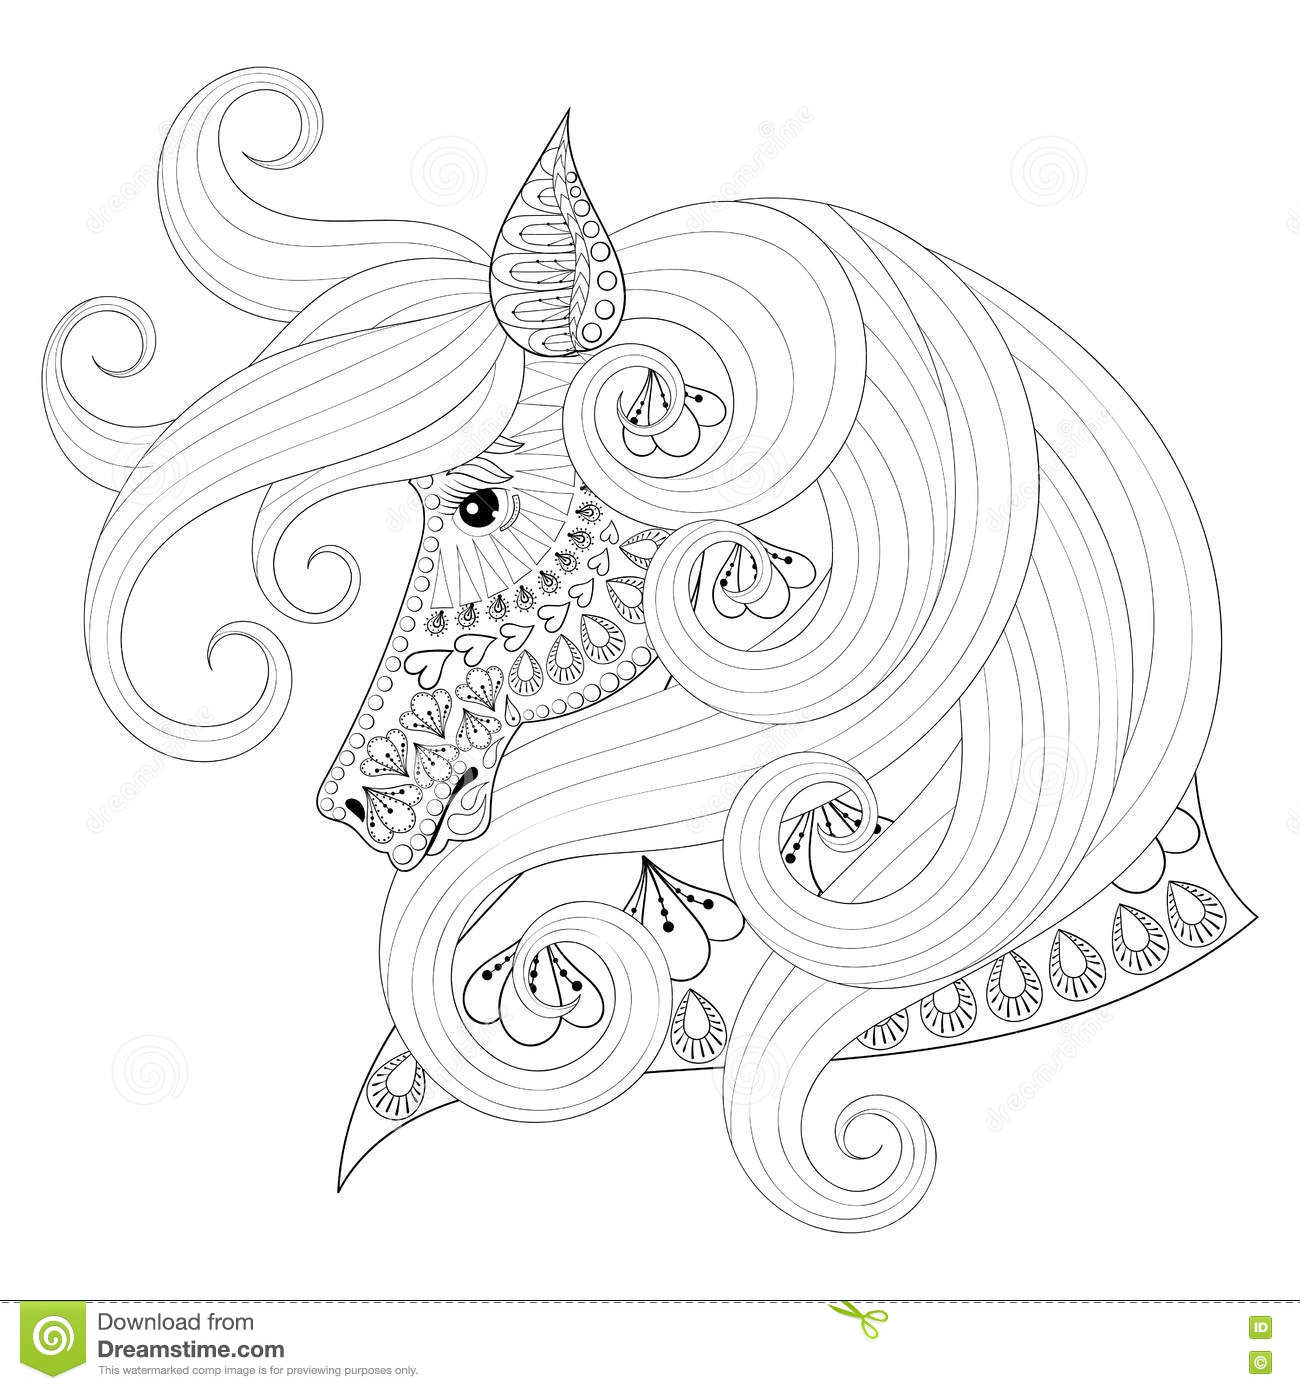 Zen coloring books for adults app - Royalty Free Vector Download Hand Drawn Zentangle Ornamental Horse For Adult Coloring Pages